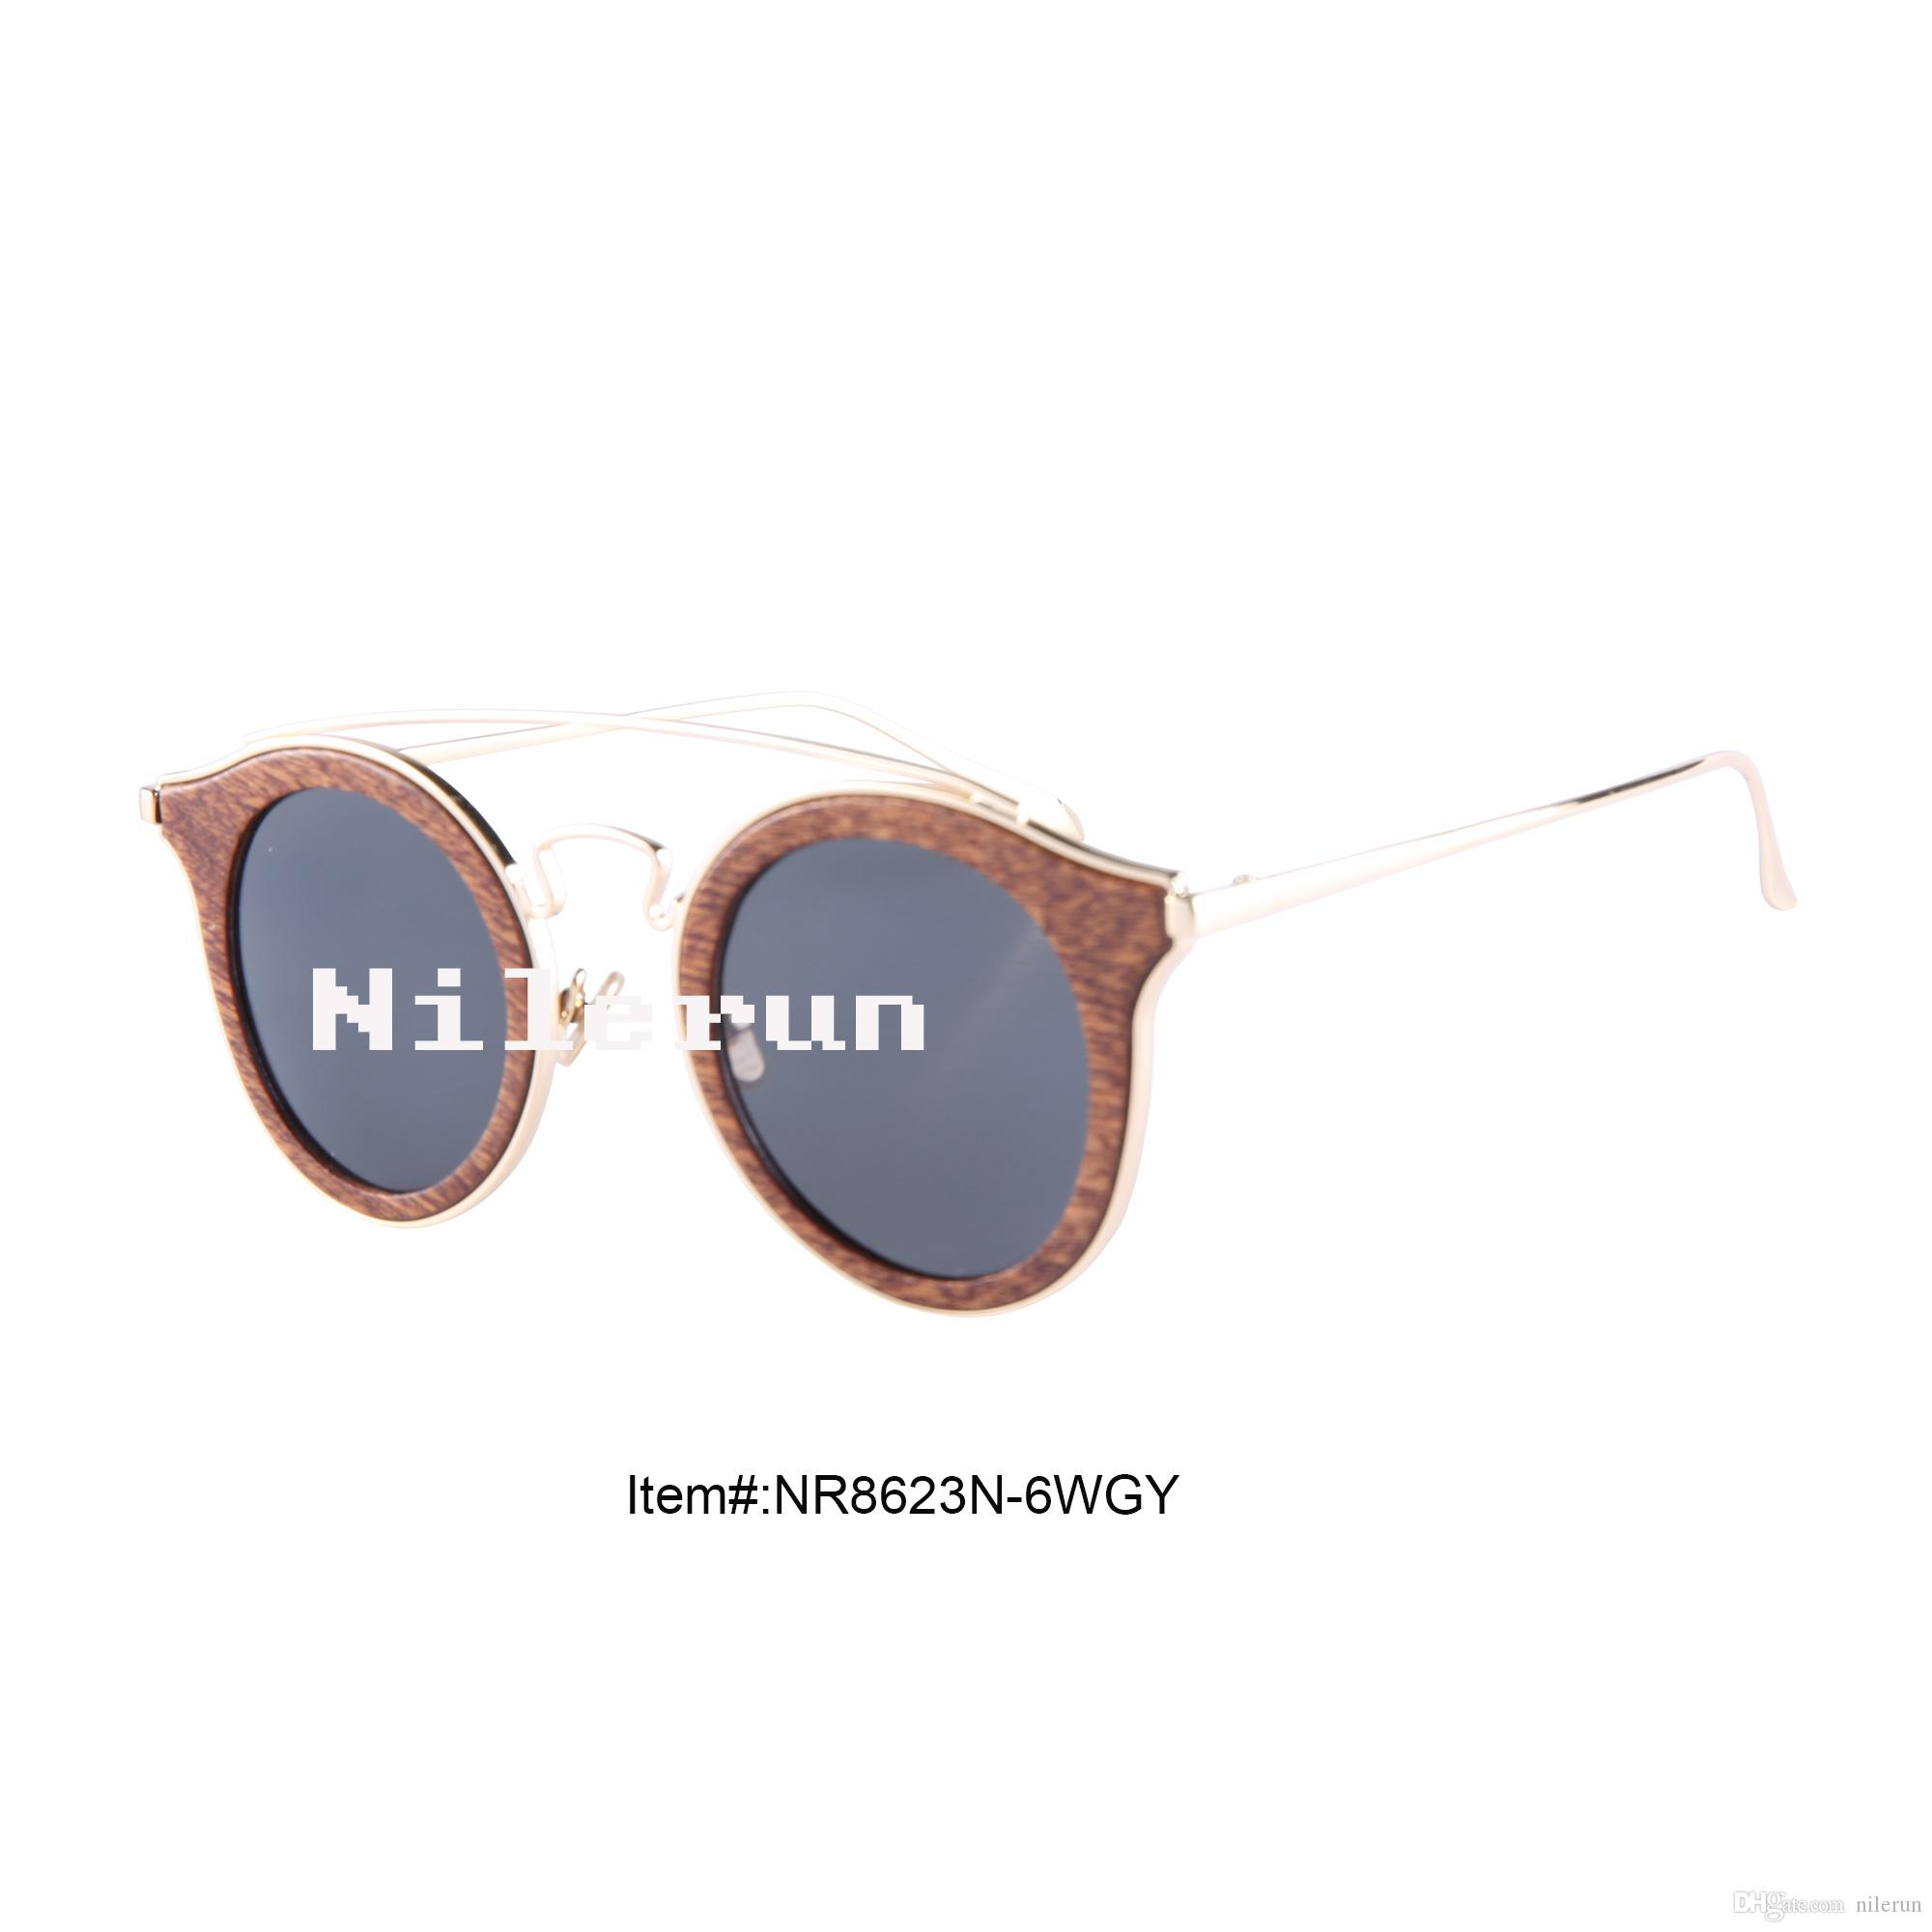 9c1b5169a9 Vintage Round Sapele Wood Metal Sunglasses Sapele Wood Sunglasses Metal  Sunglasses Wood Sunglasses Online with  43.78 Piece on Nilerun s Store